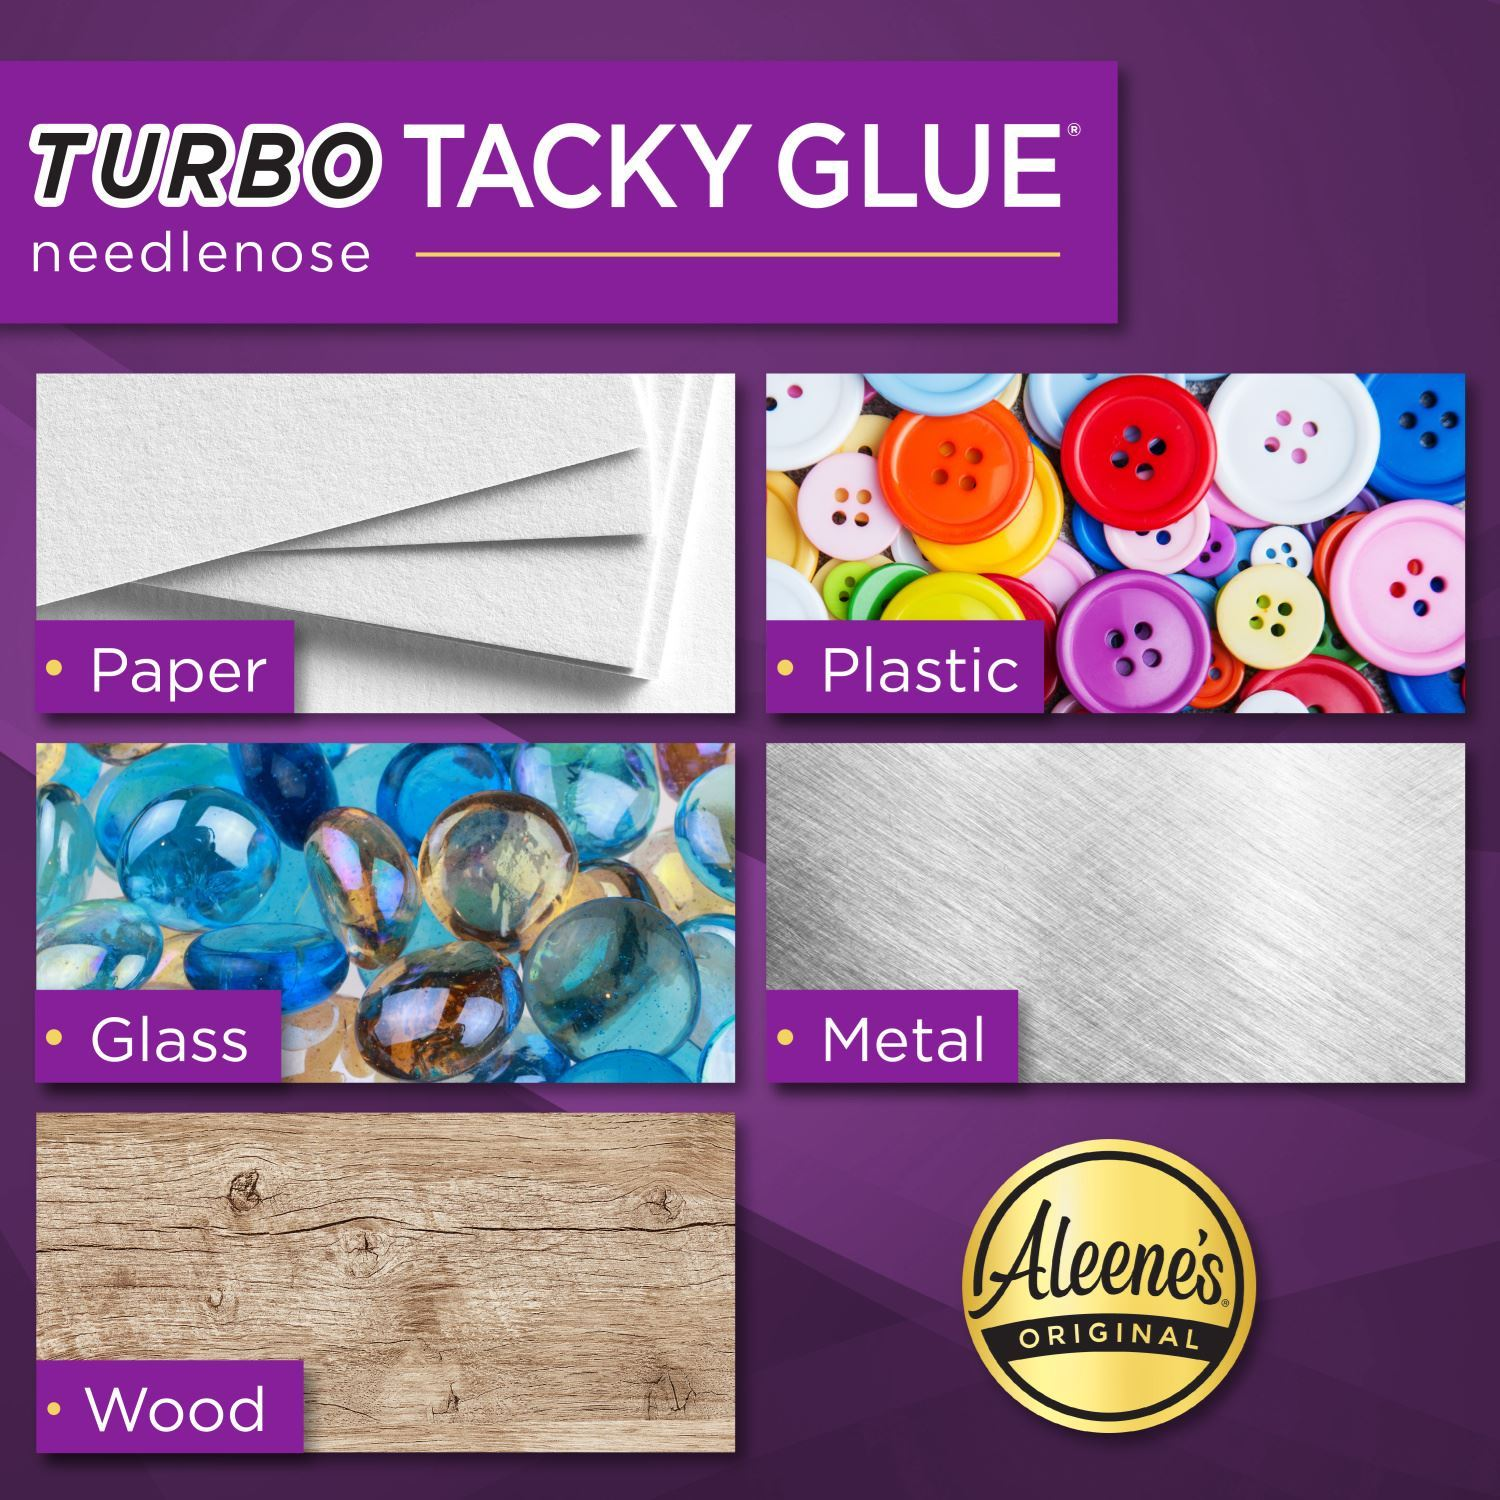 Aleenes Turbo Tacky Glue Needlenose projects